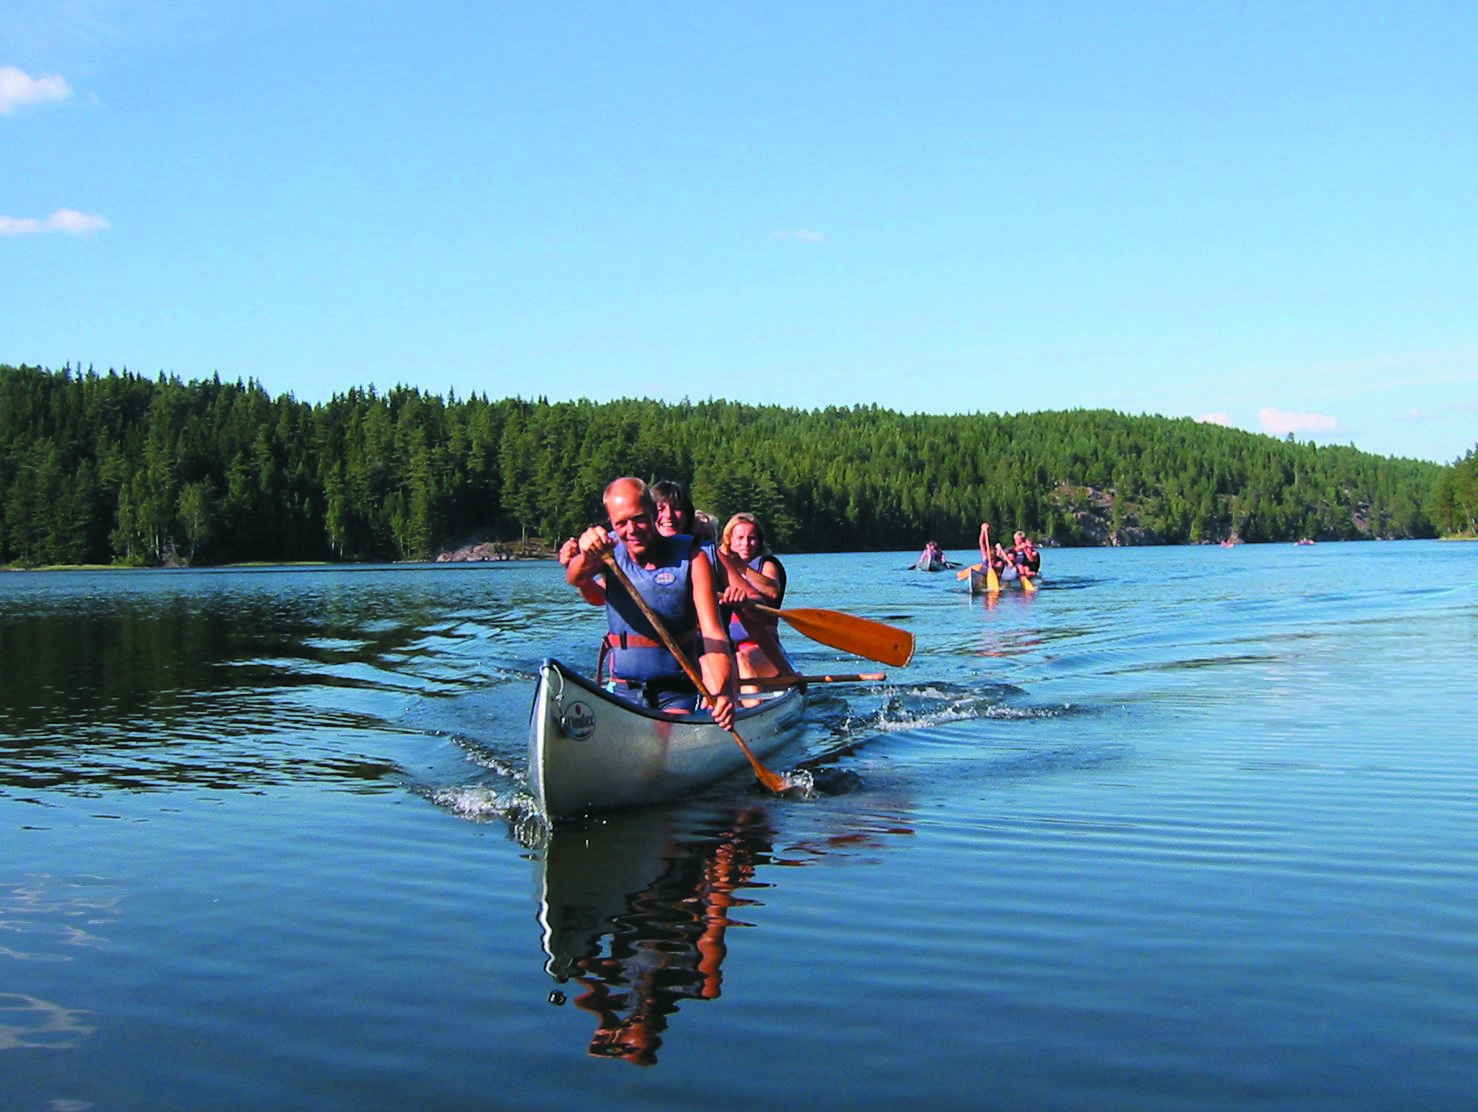 Canoeing on the beautiful lakes in Dalsland